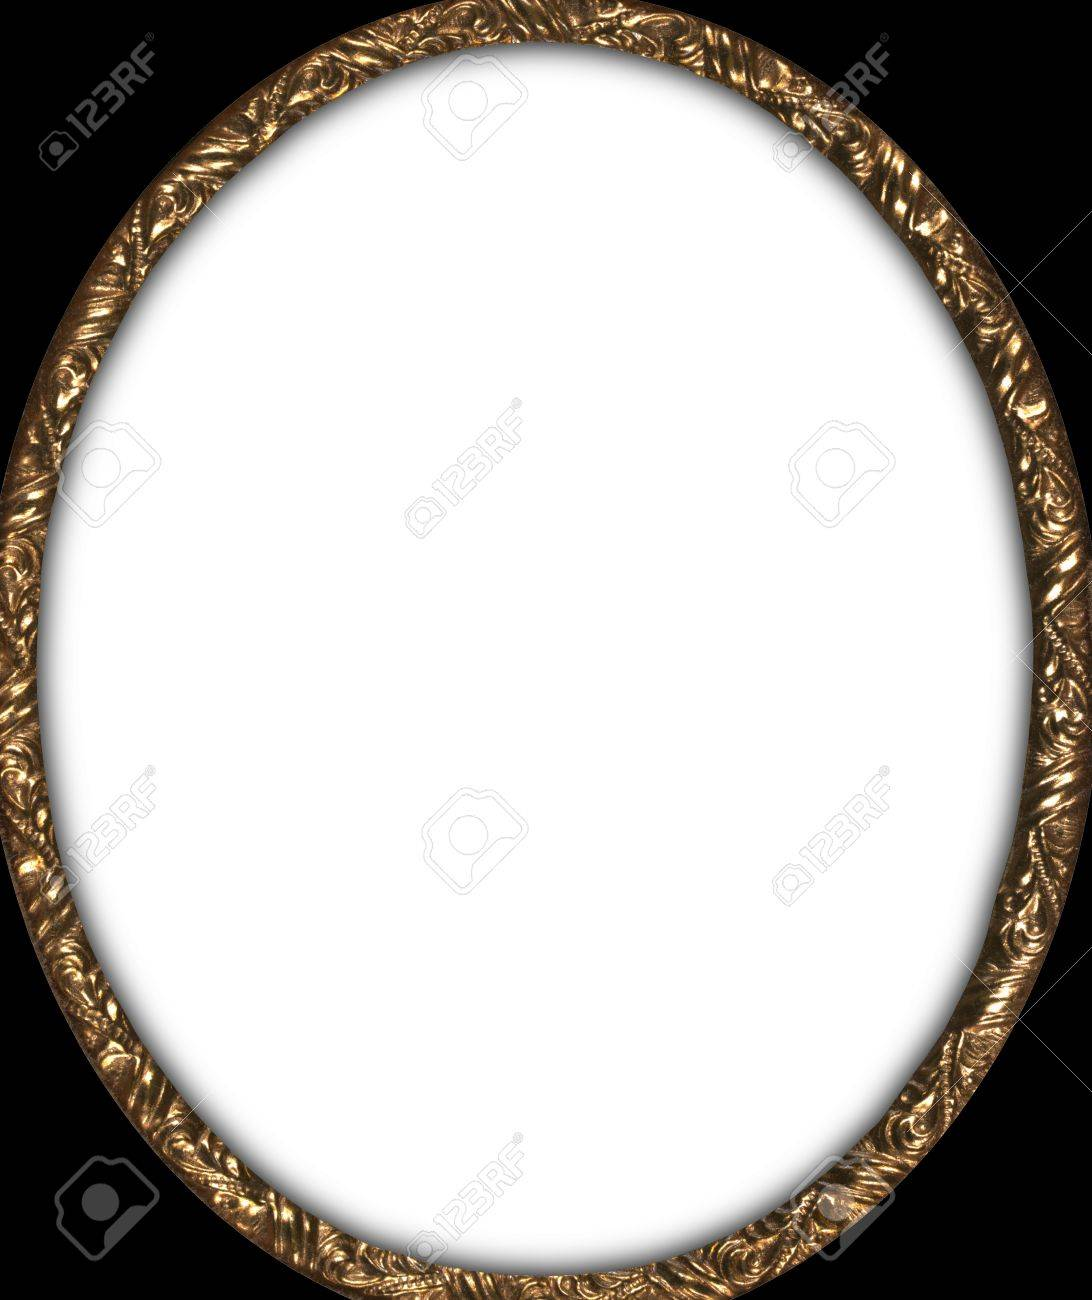 Antique Oval Photo Frame Circa1850 Stock Photo, Picture And Royalty ...